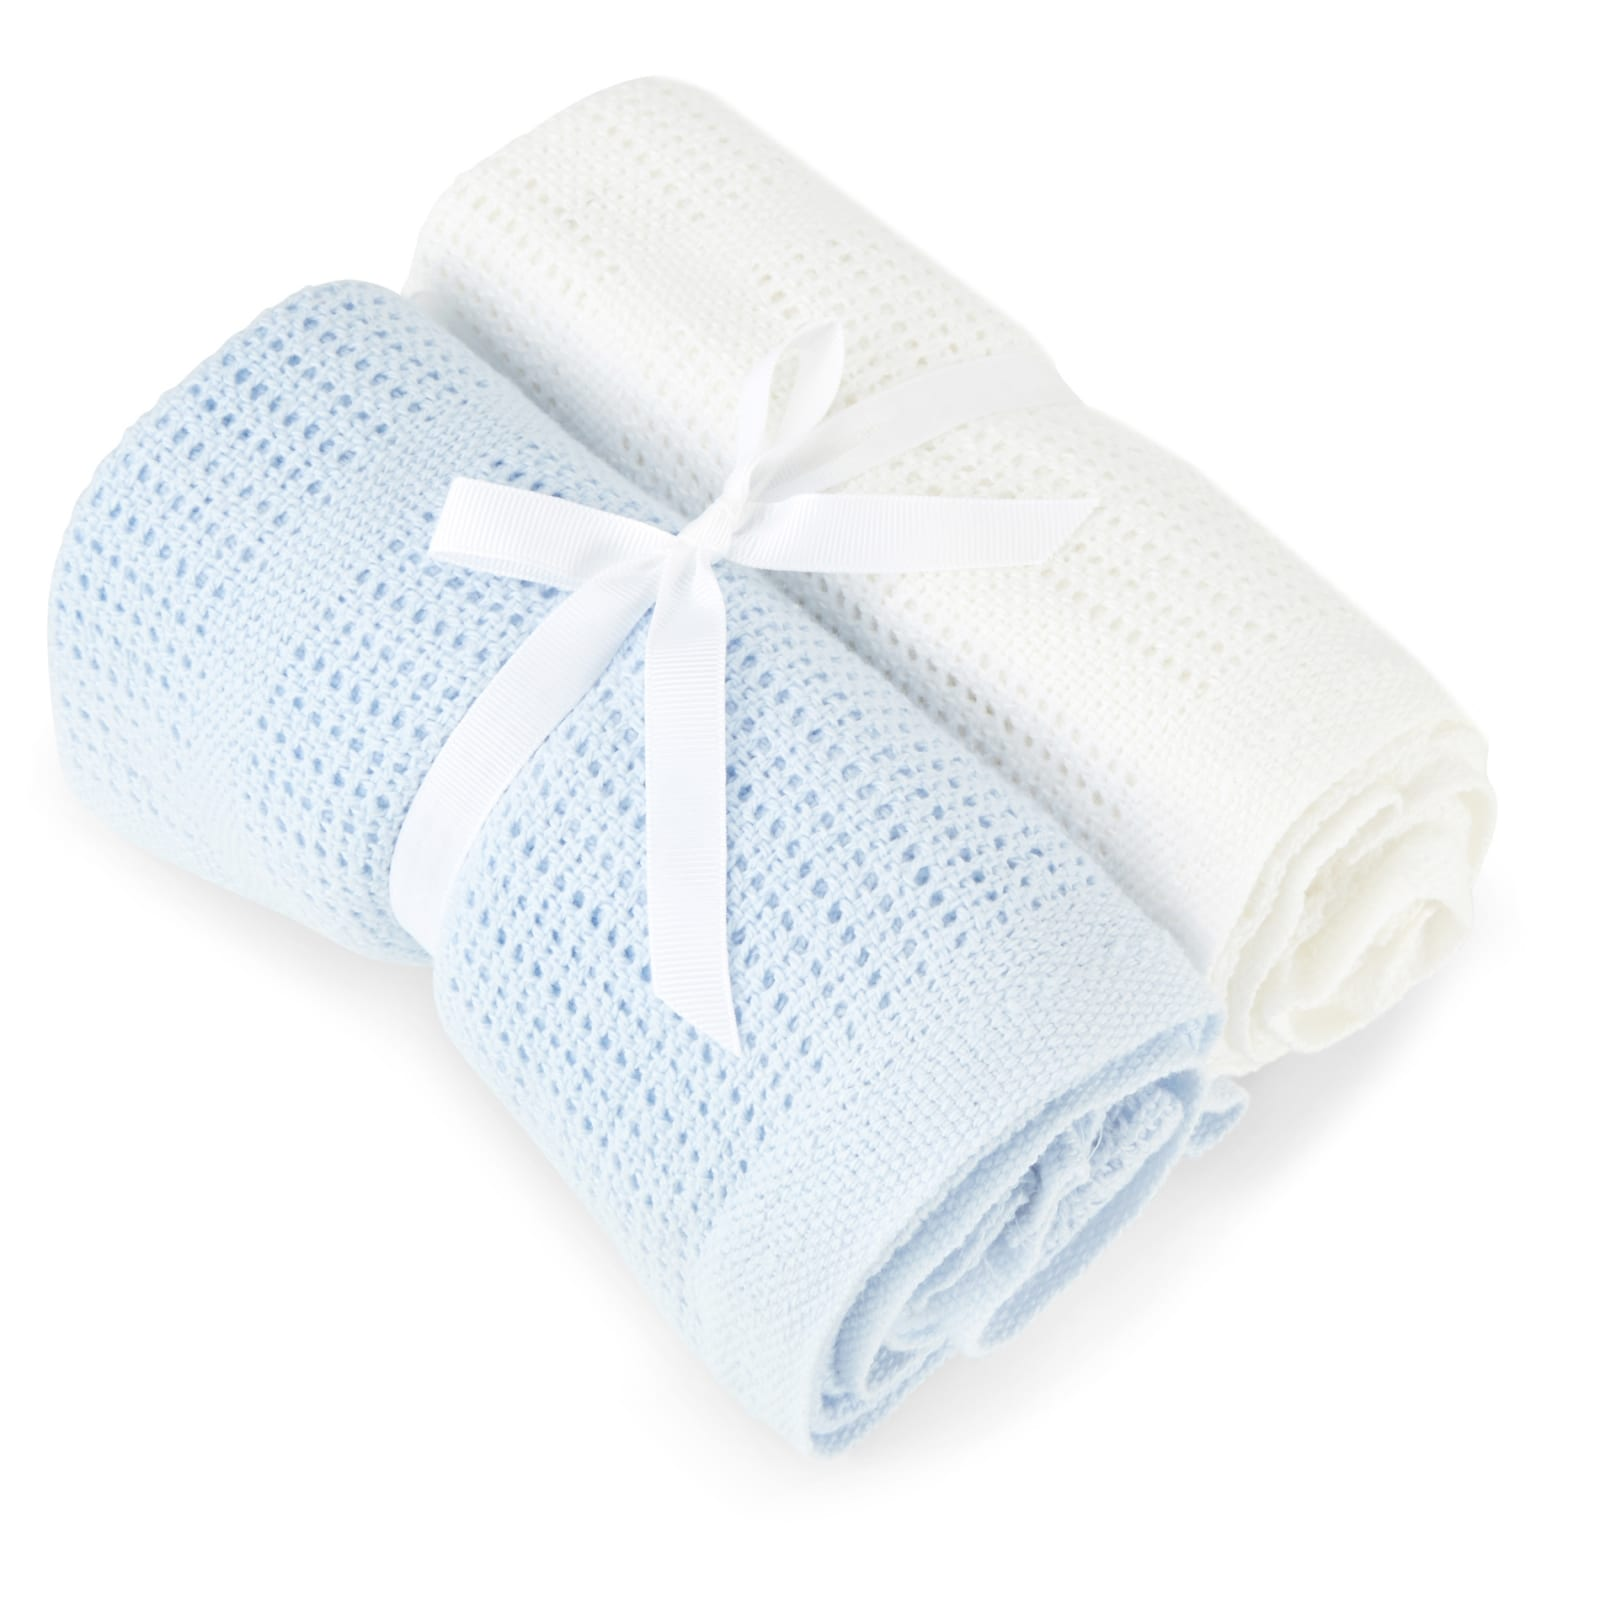 2 Pack Cellular Blanket – Blue and White product image